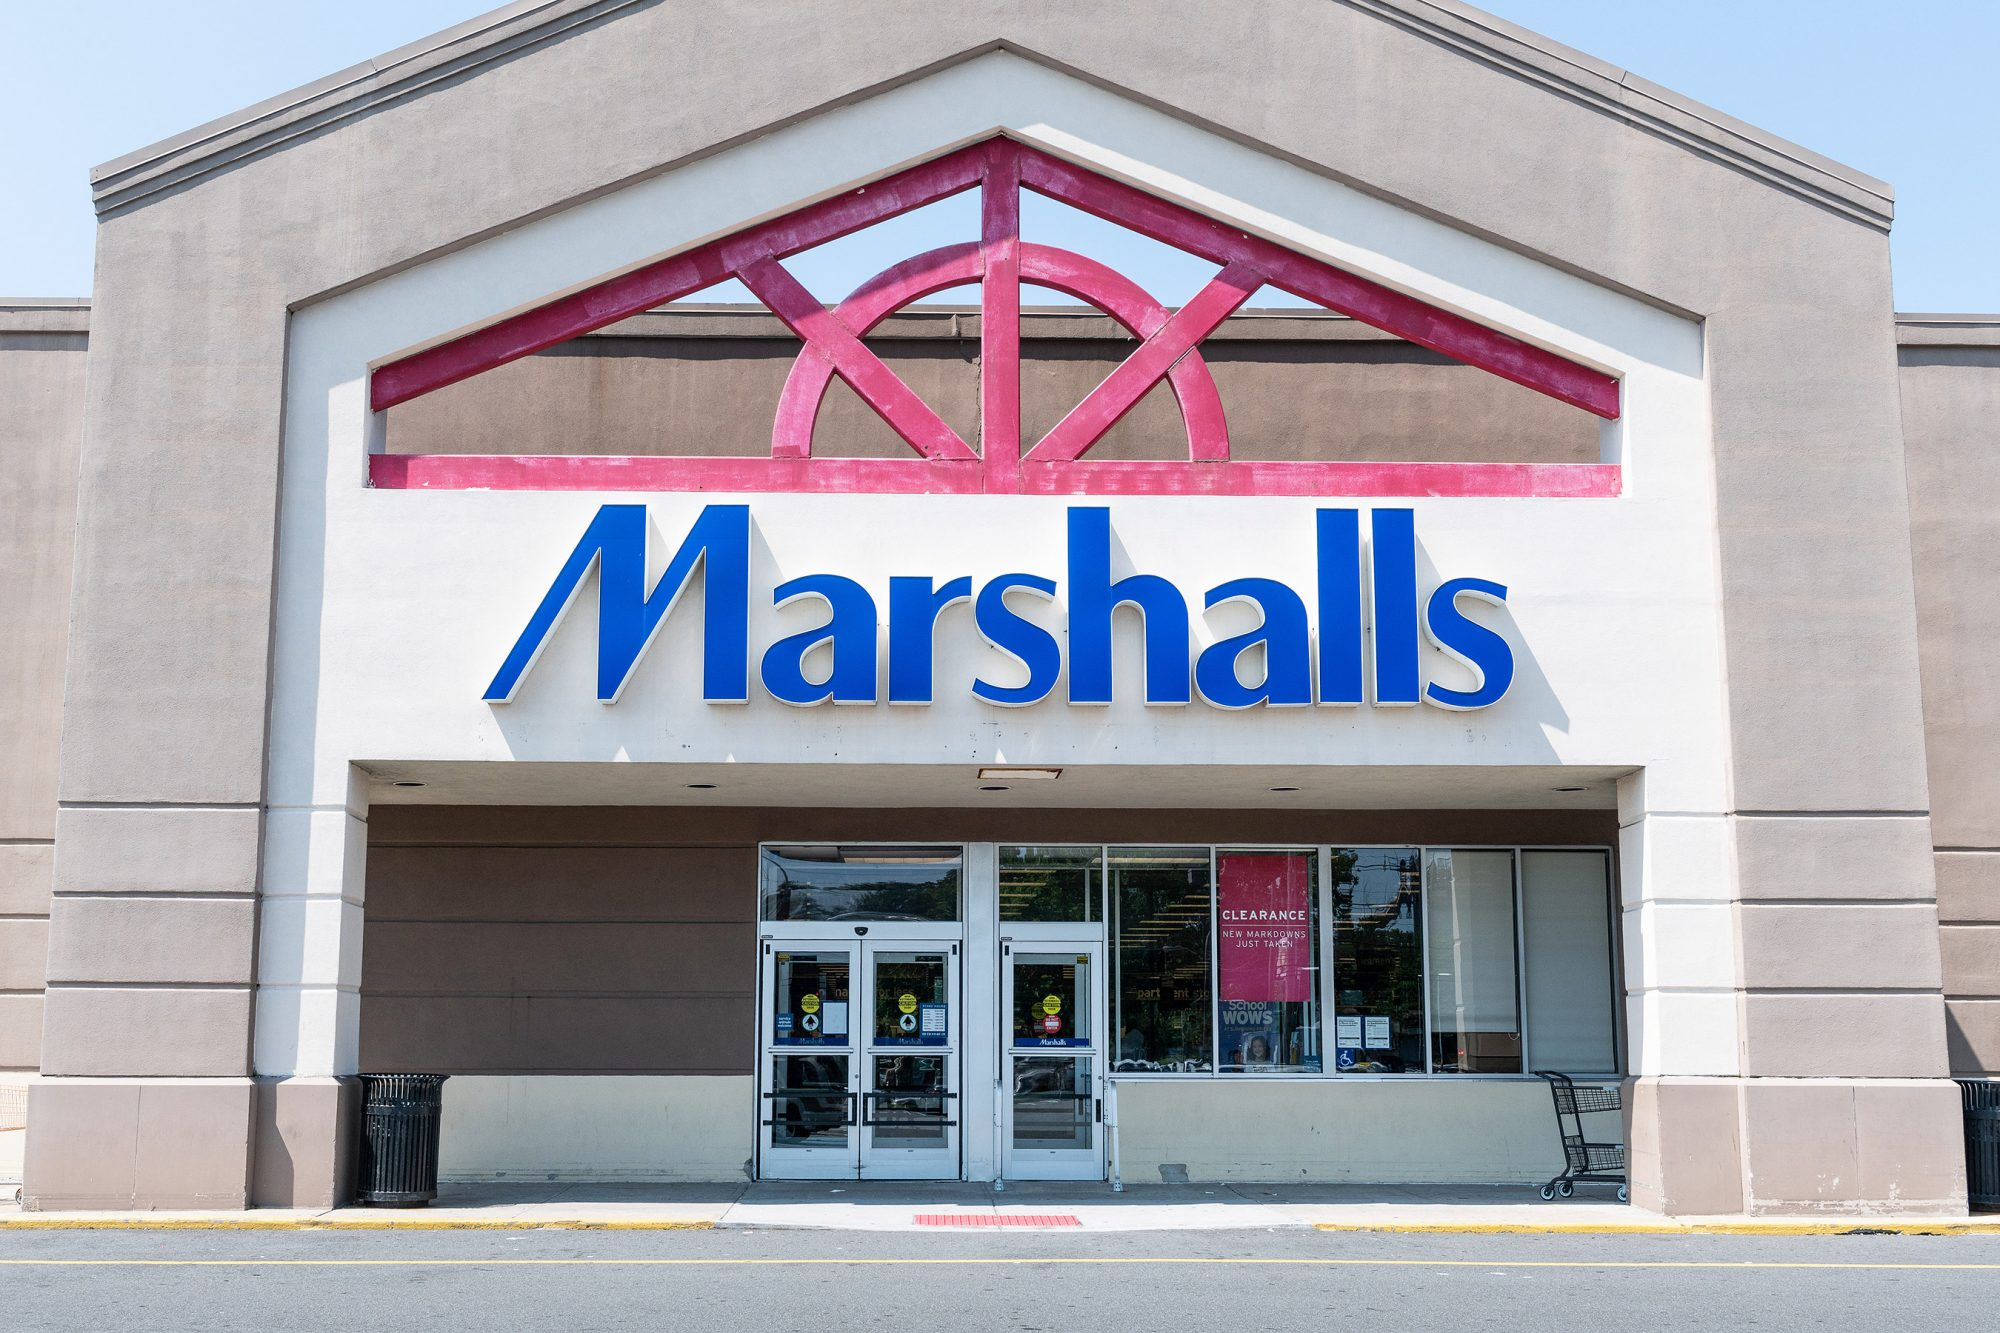 Marshalls store in Totowa, New Jersey